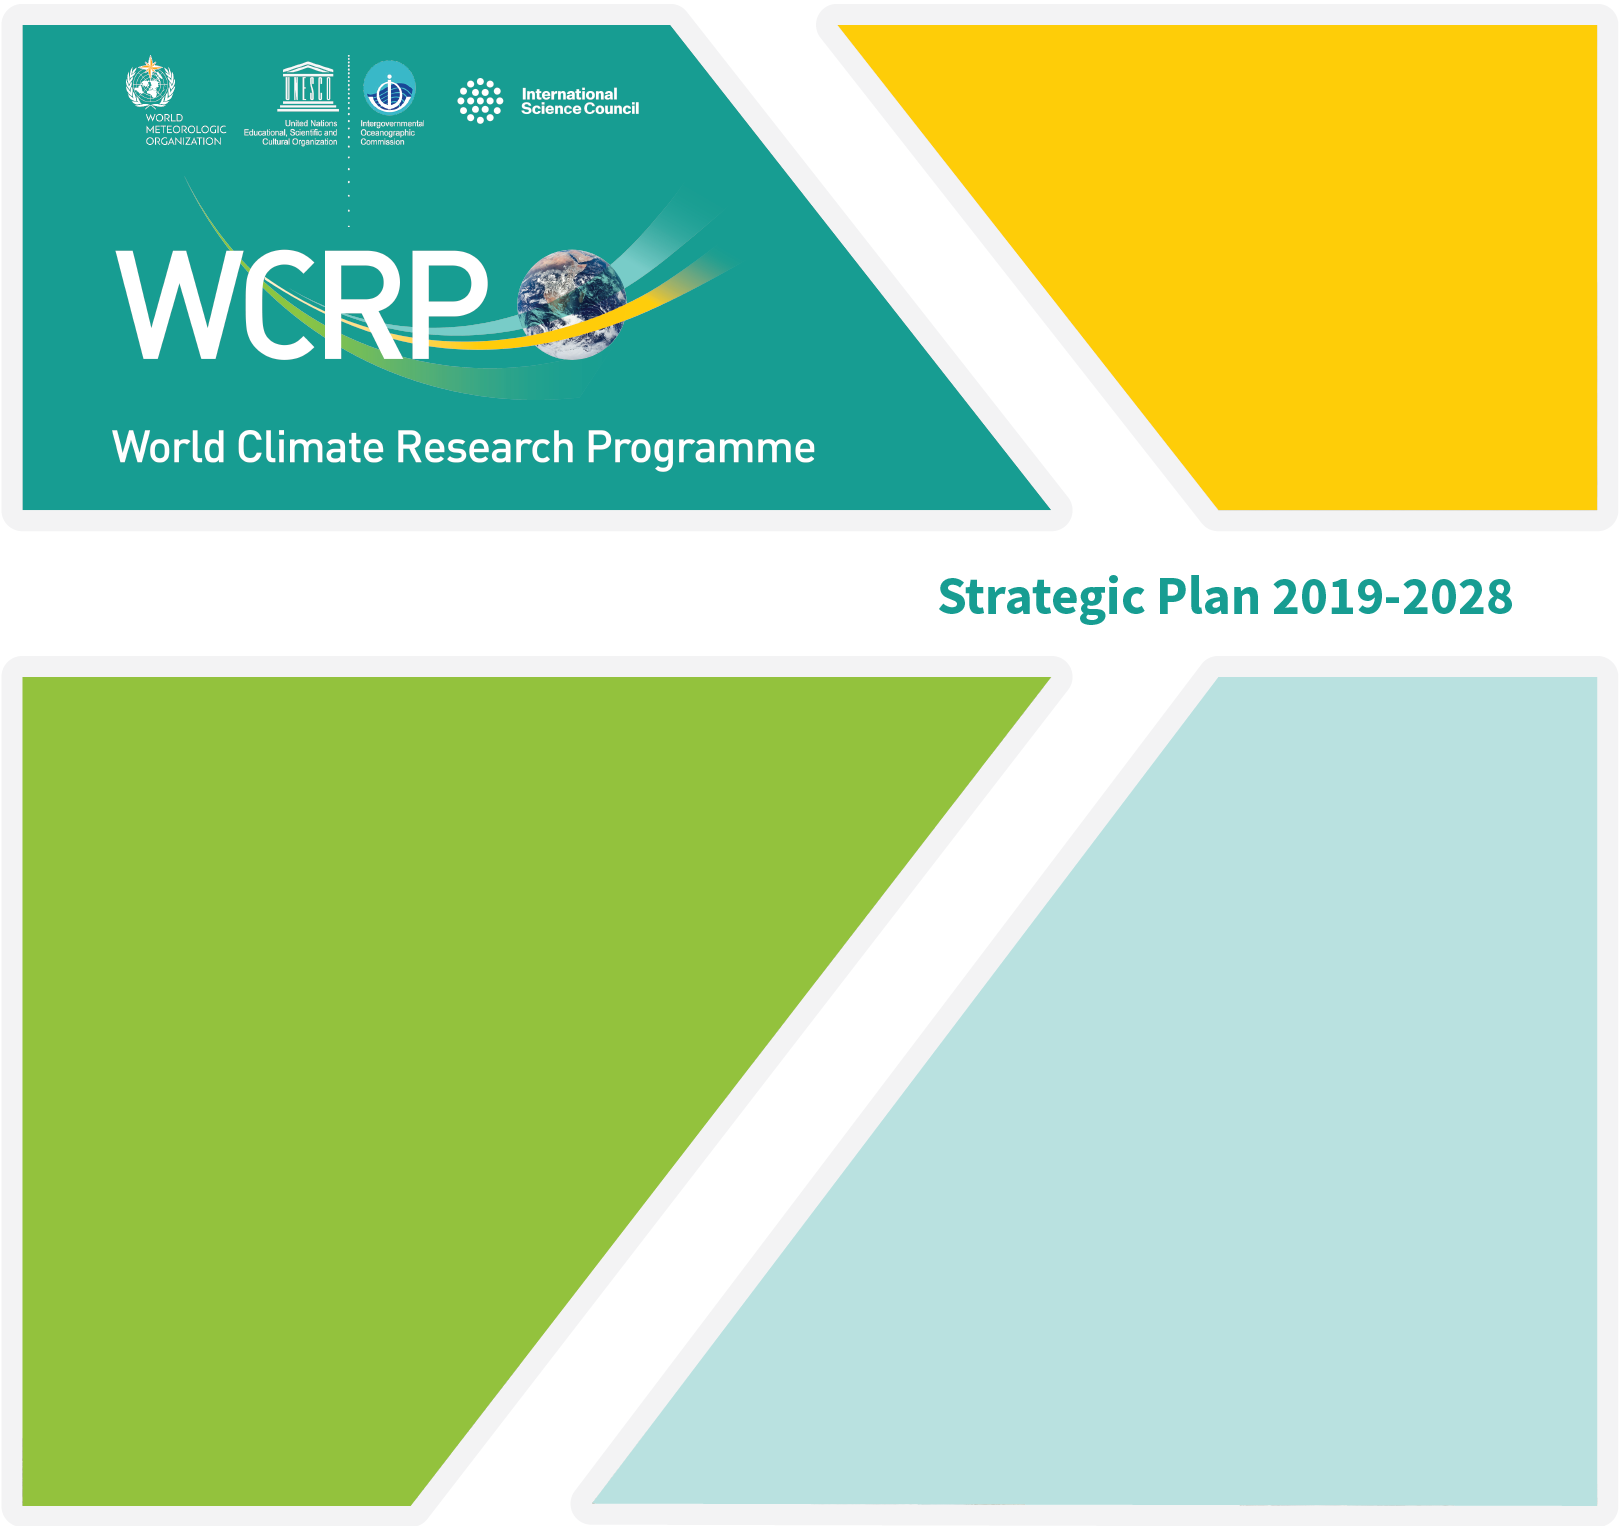 WCRP Strategic Plan A4 SQ July2018 01